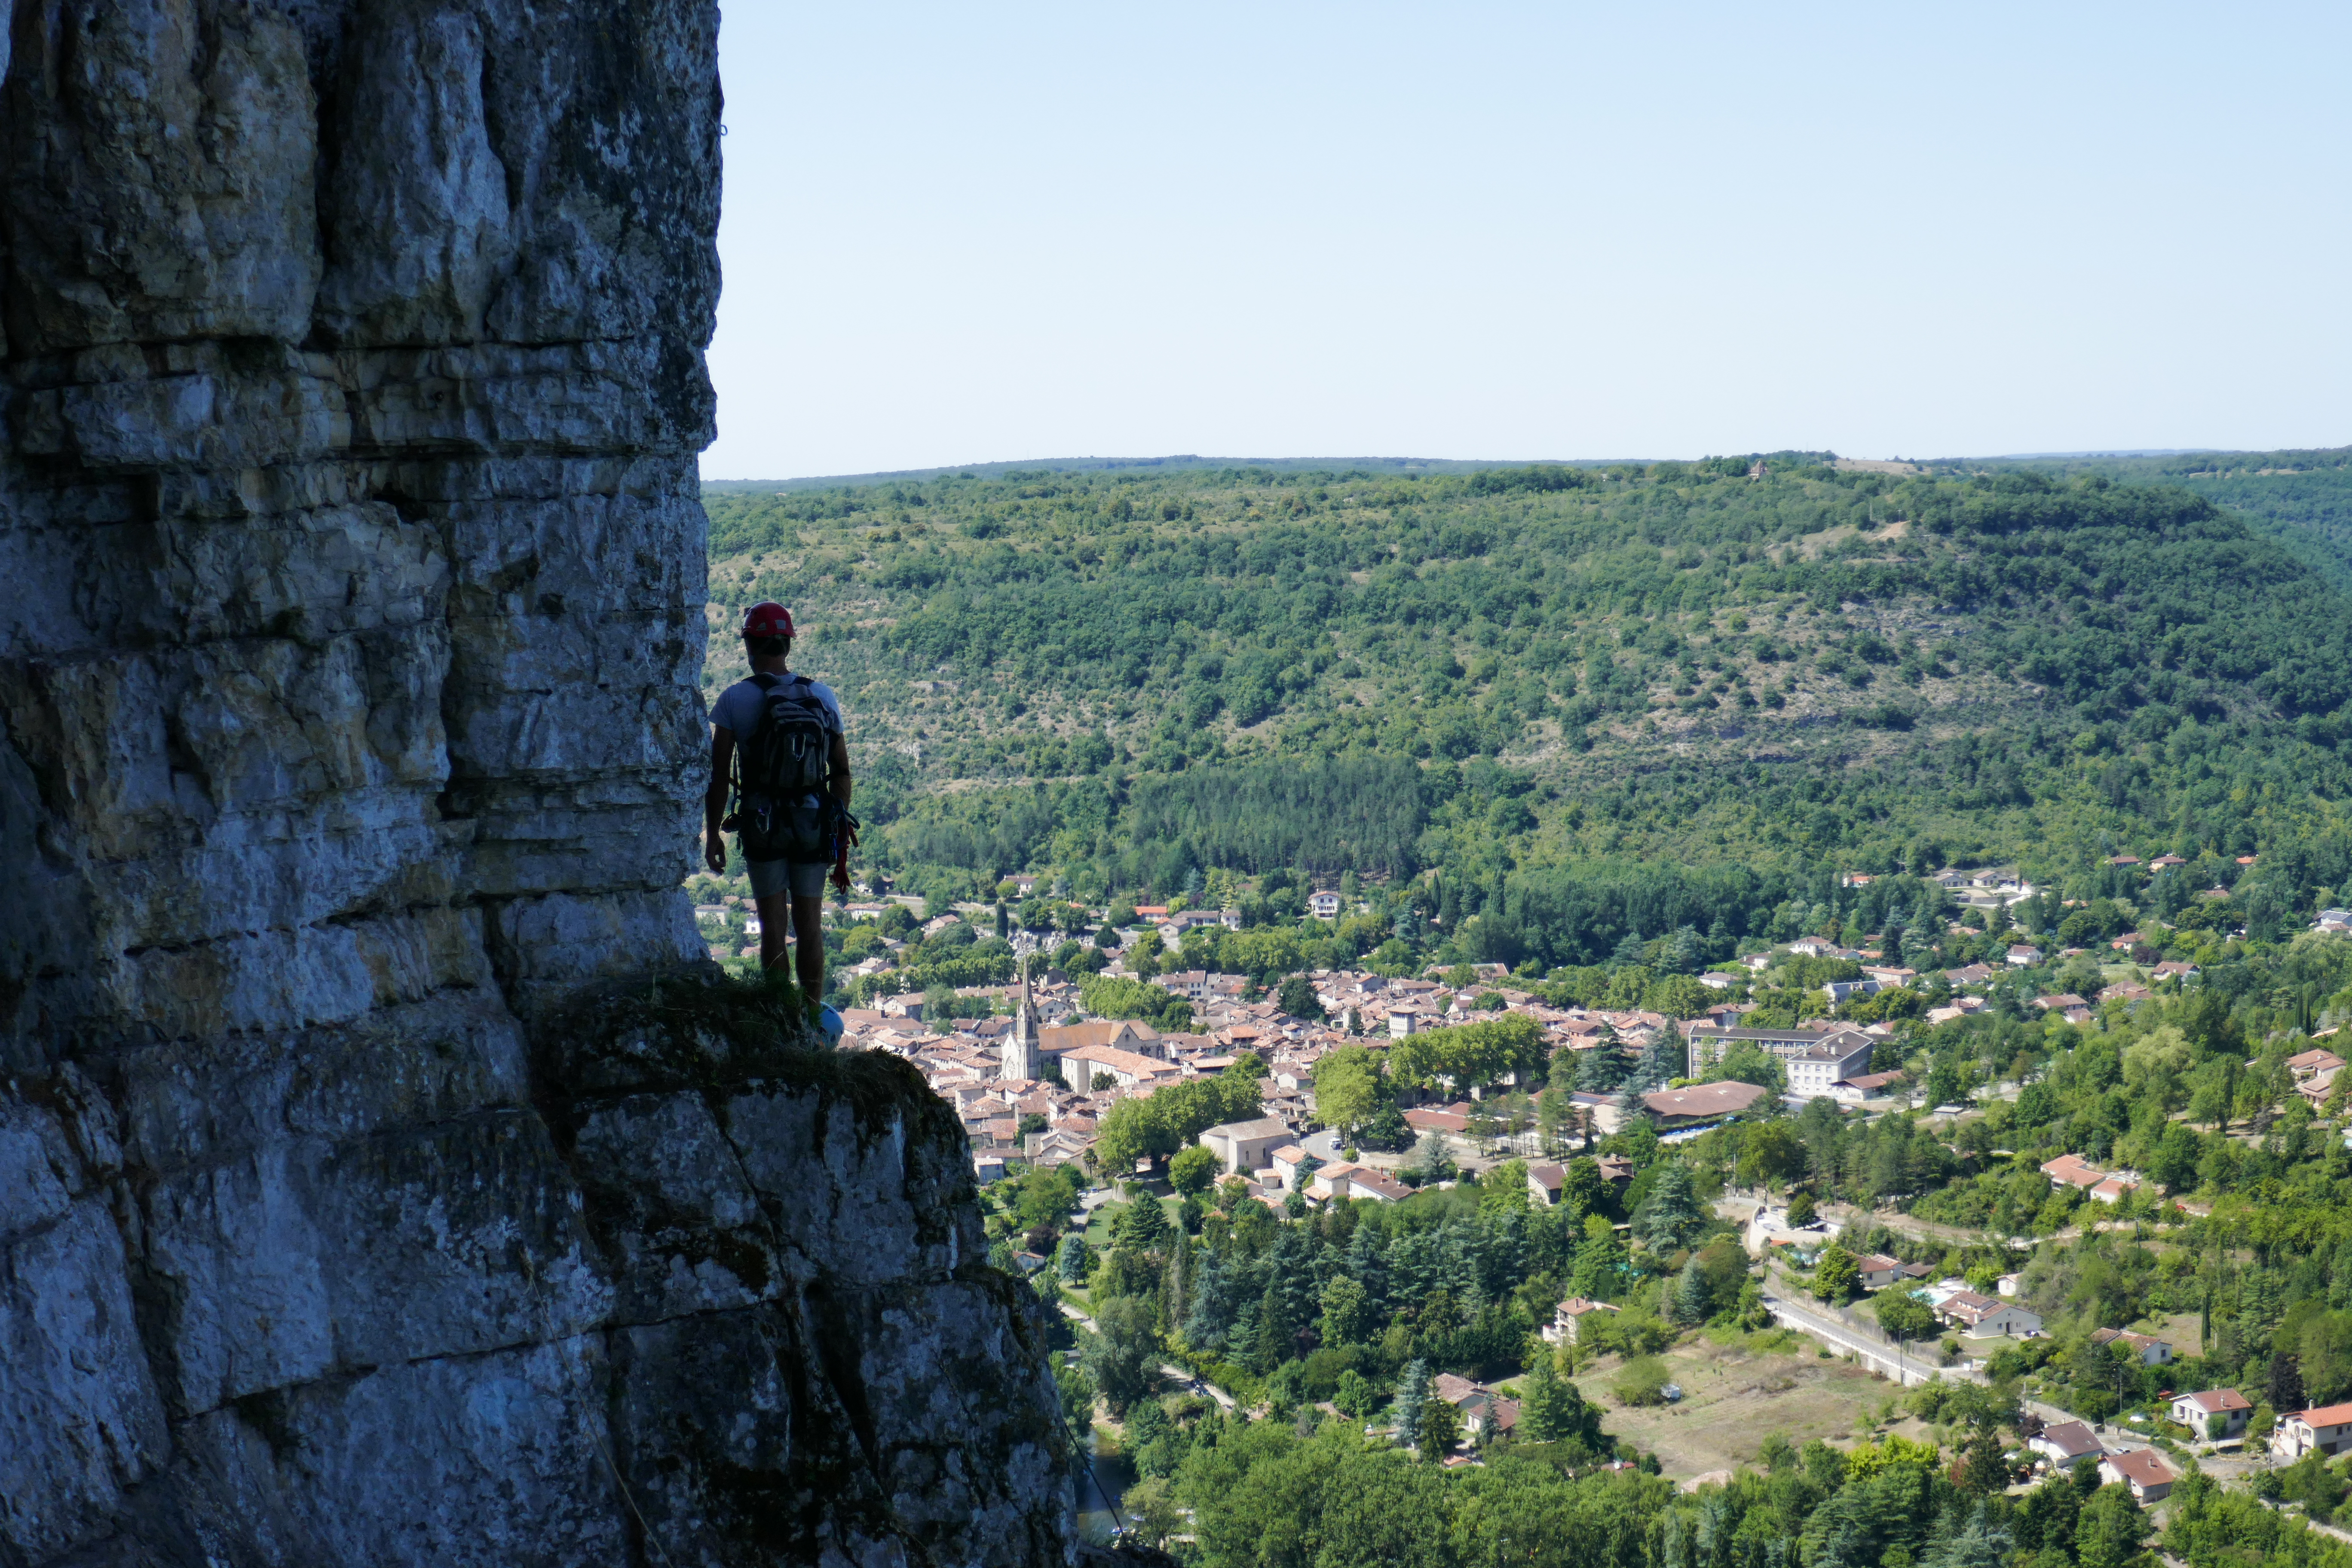 Via Ferrata - Roc d'Anglars - Saint-Antonin-Noble-Val